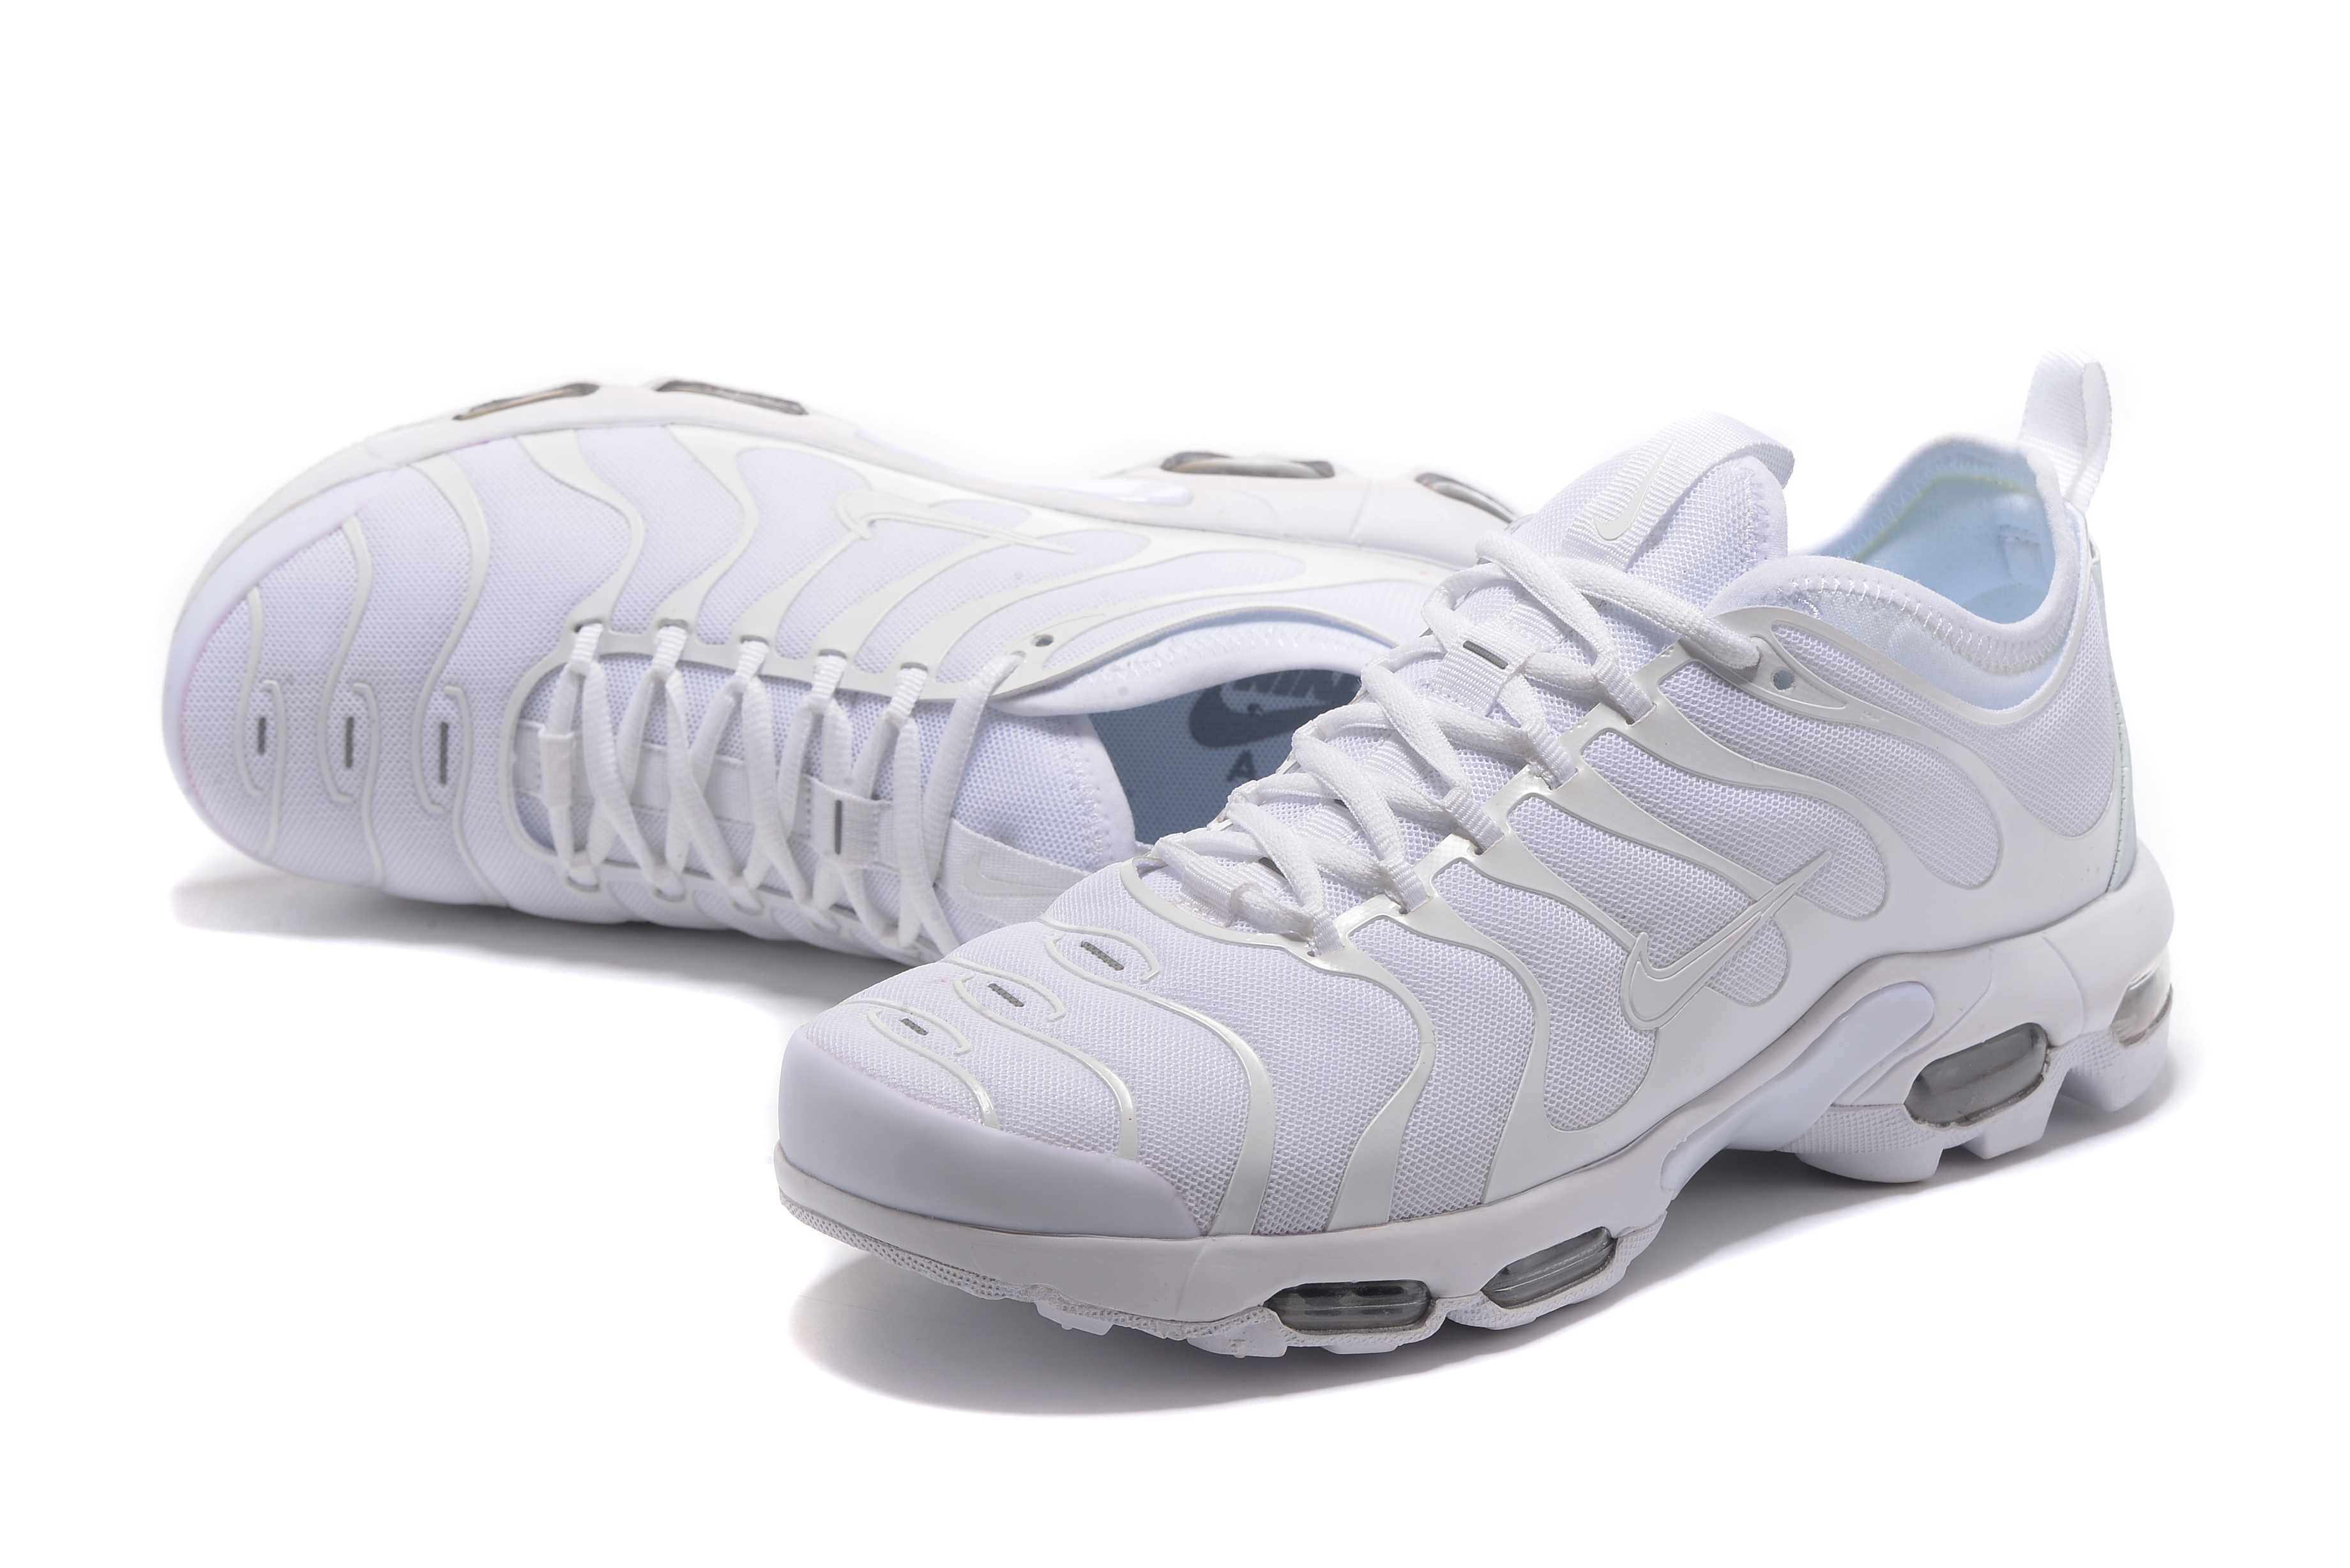 Nike Air Max Plus TN White Silver Shoes